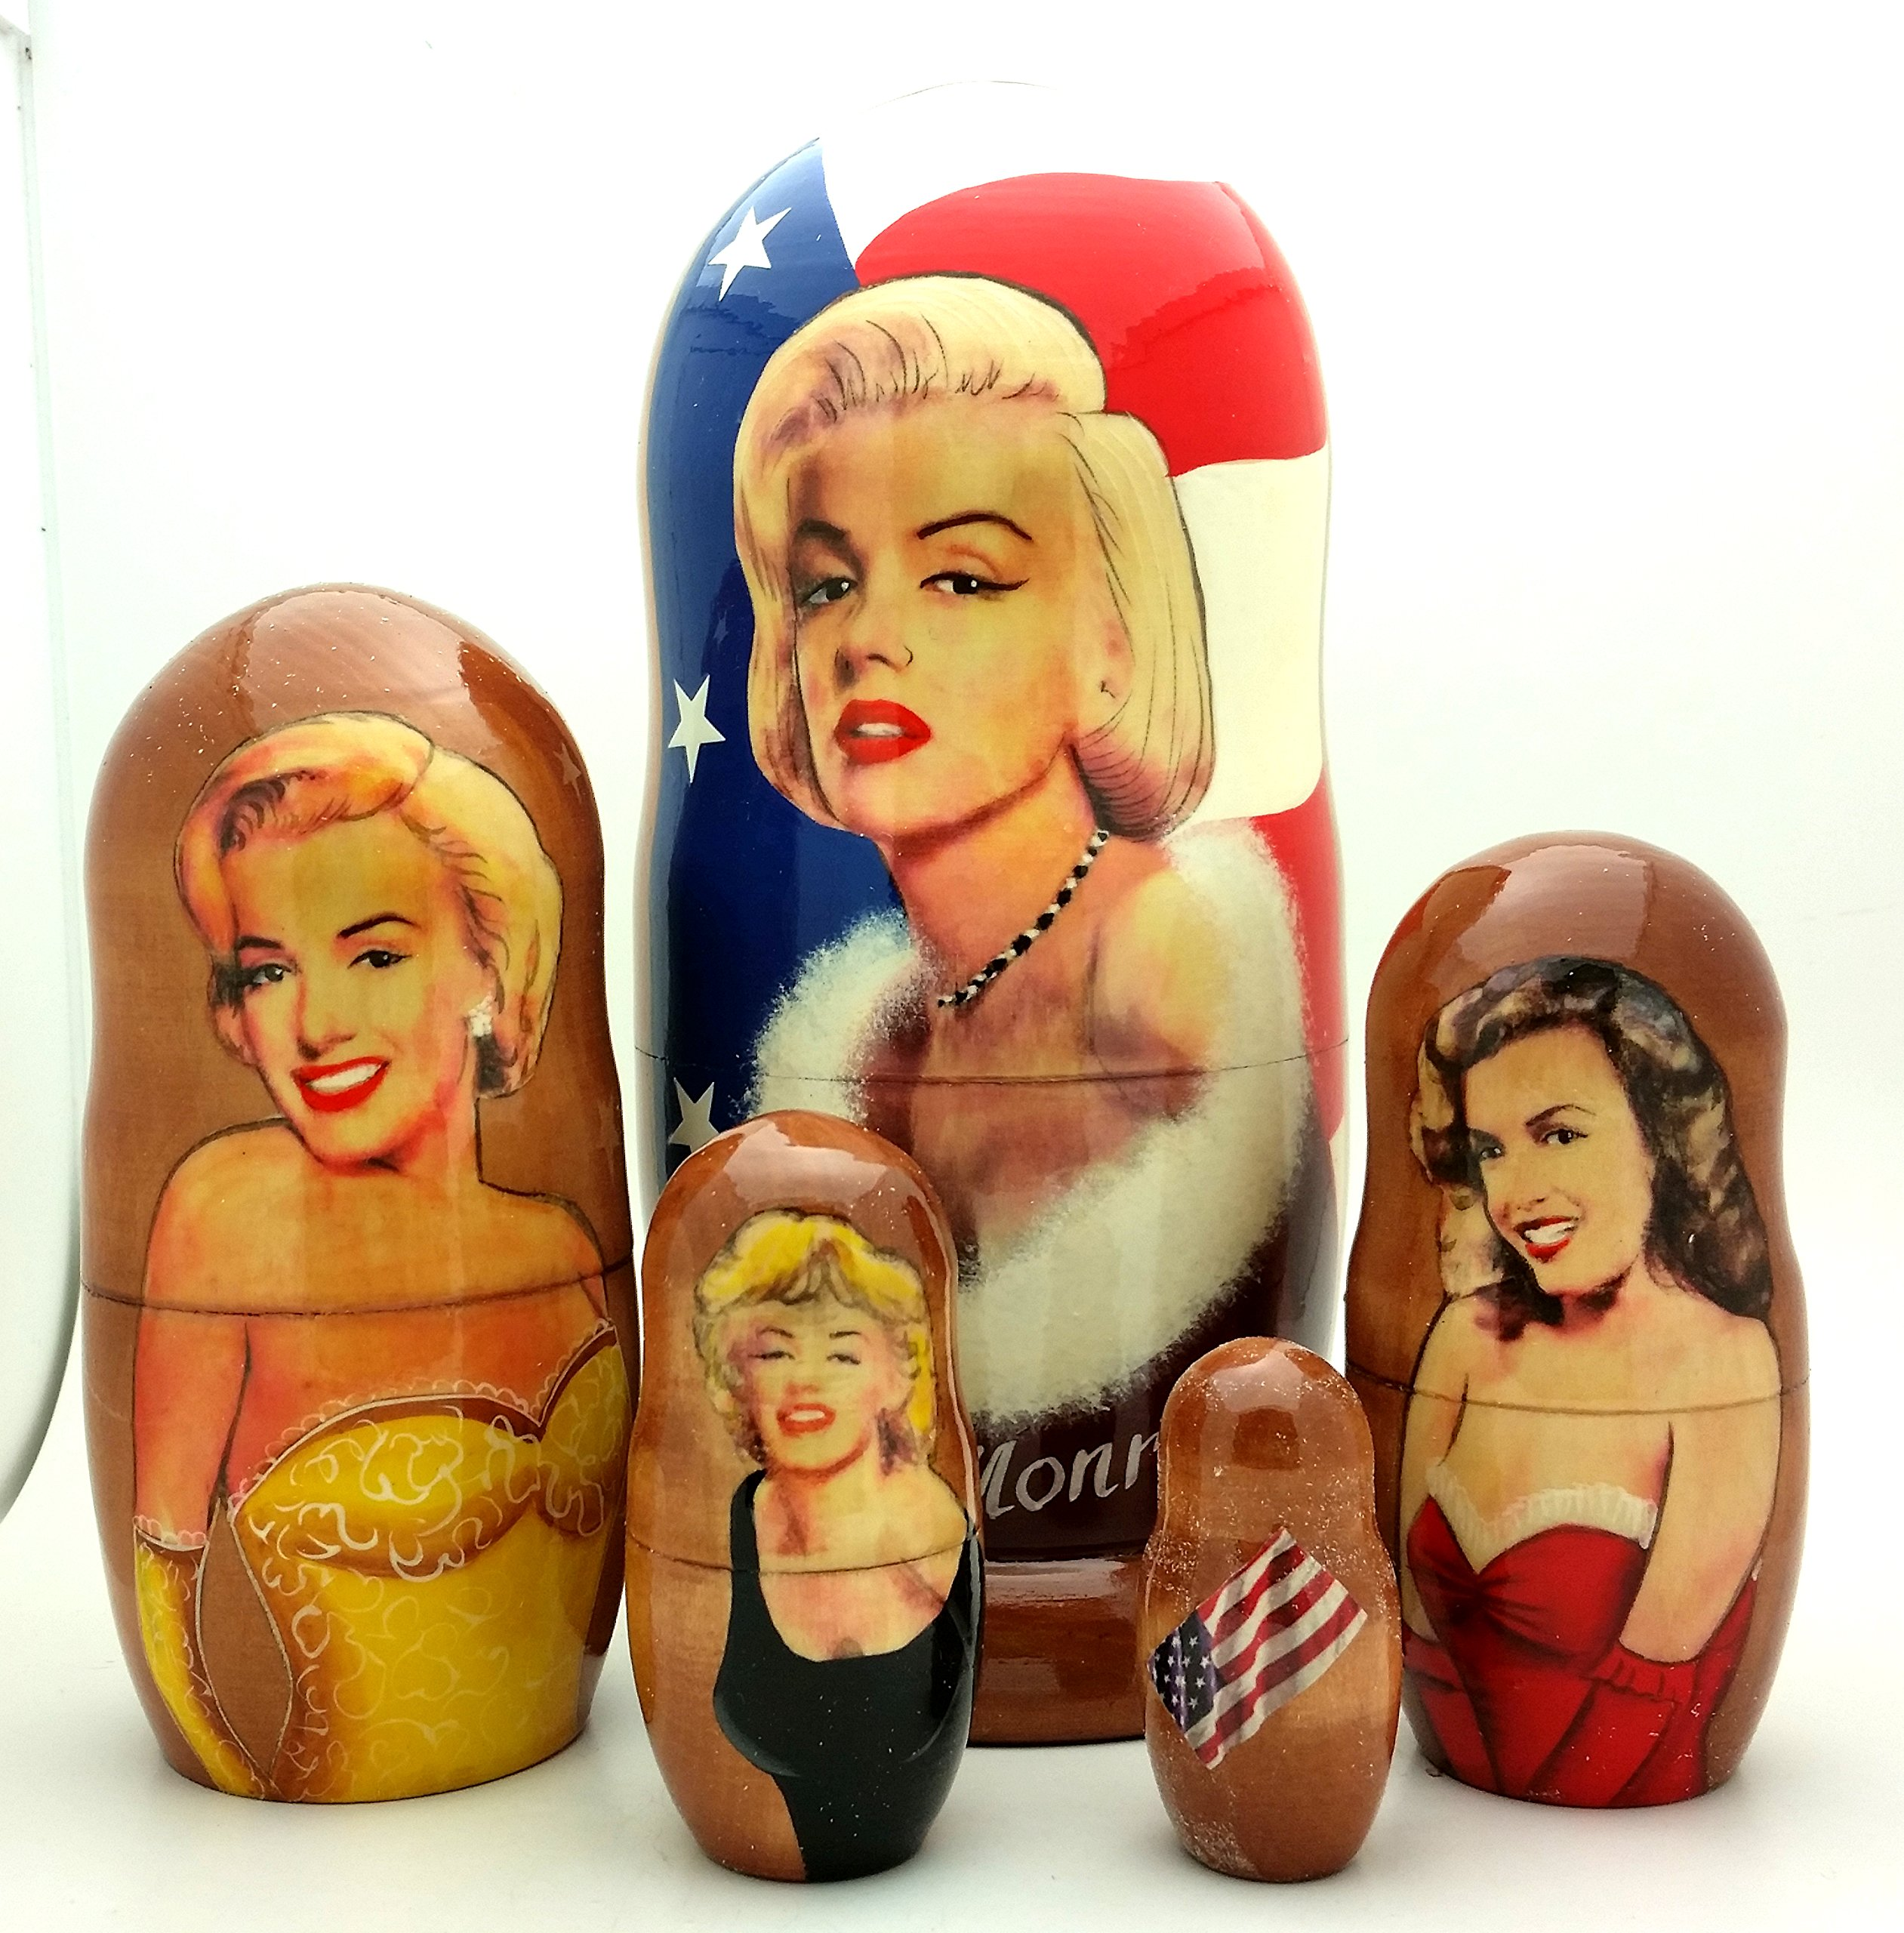 BuyRussianGifts Marilyn Monroe Russian Nesting Doll 5 Piece Set 7'' H by BuyRussianGifts